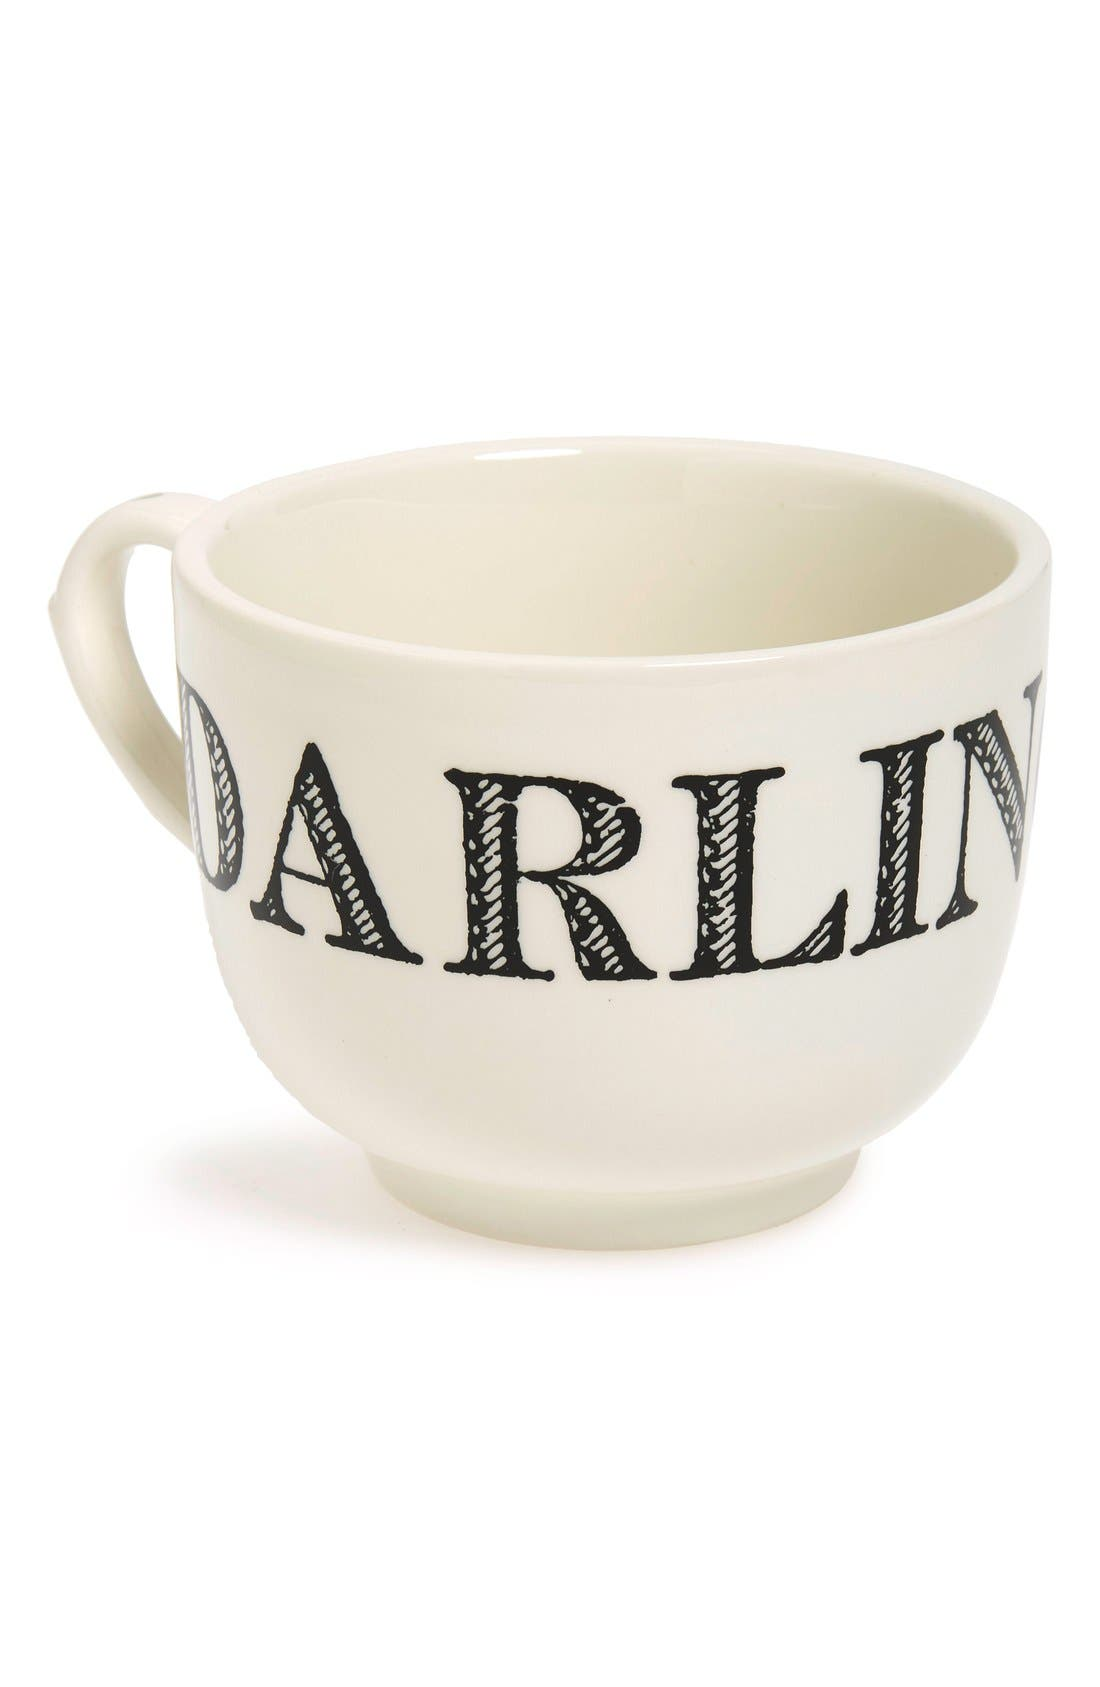 Main Image - Sir Madam 'Grand Cup - Darling' Porcelain Coffee Mug